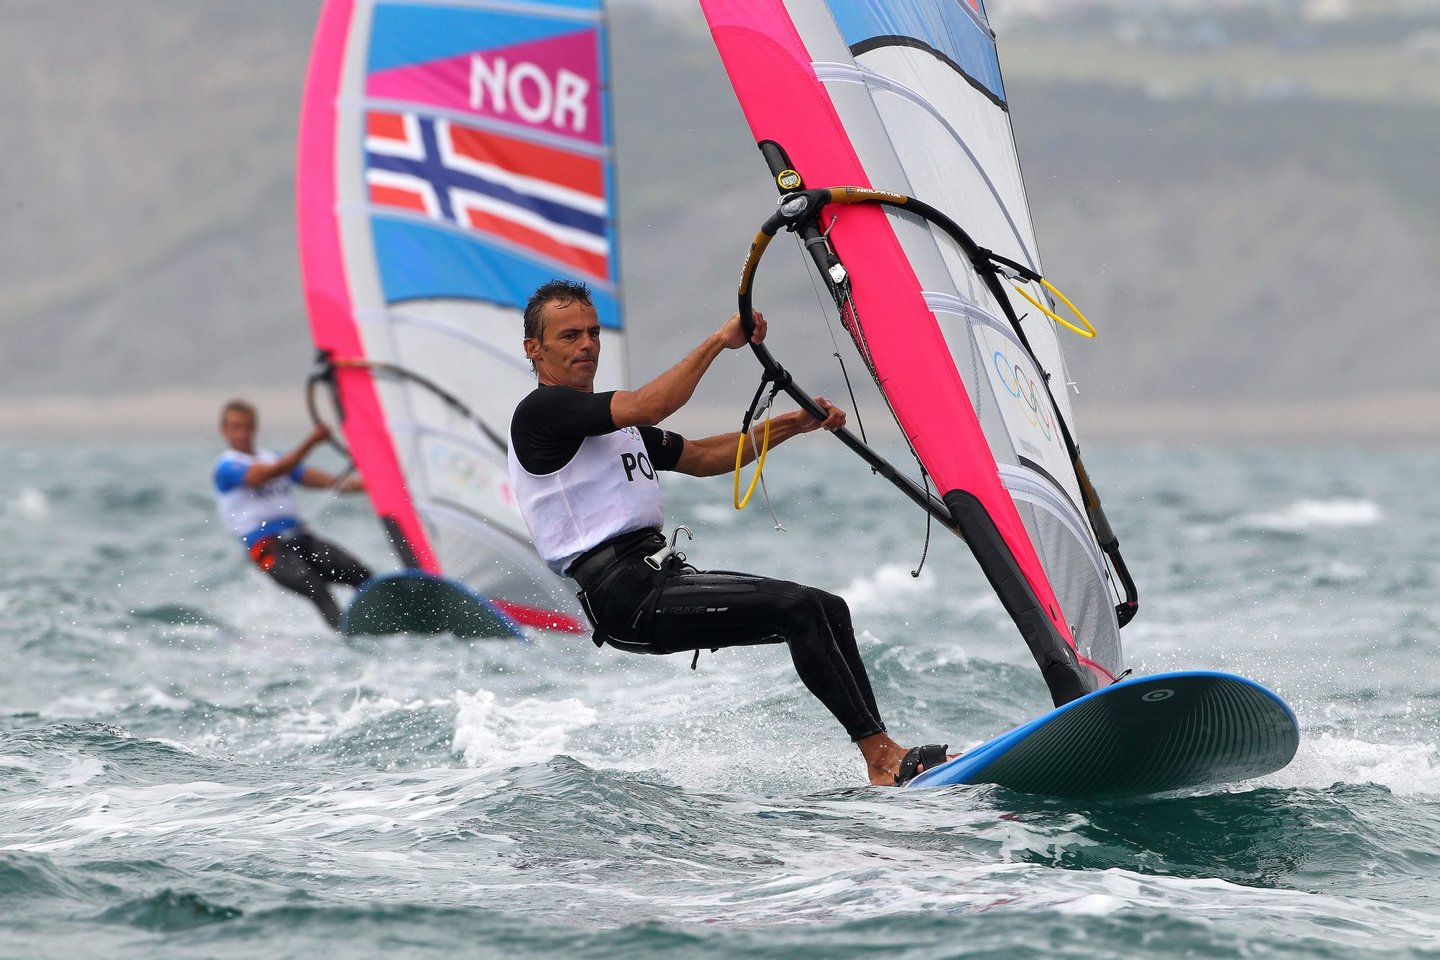 WEYMOUTH, ENGLAND - JULY 31: Joao Rodrigues of Portugal competes in the Men's RS:X Sailing on Day 4 of the London 2012 Olympic Games at the Weymouth & Portland Venue at Weymouth Harbour on July 31, 2012 in Weymouth, England. (Photo by Richard Langdon/Getty Images)